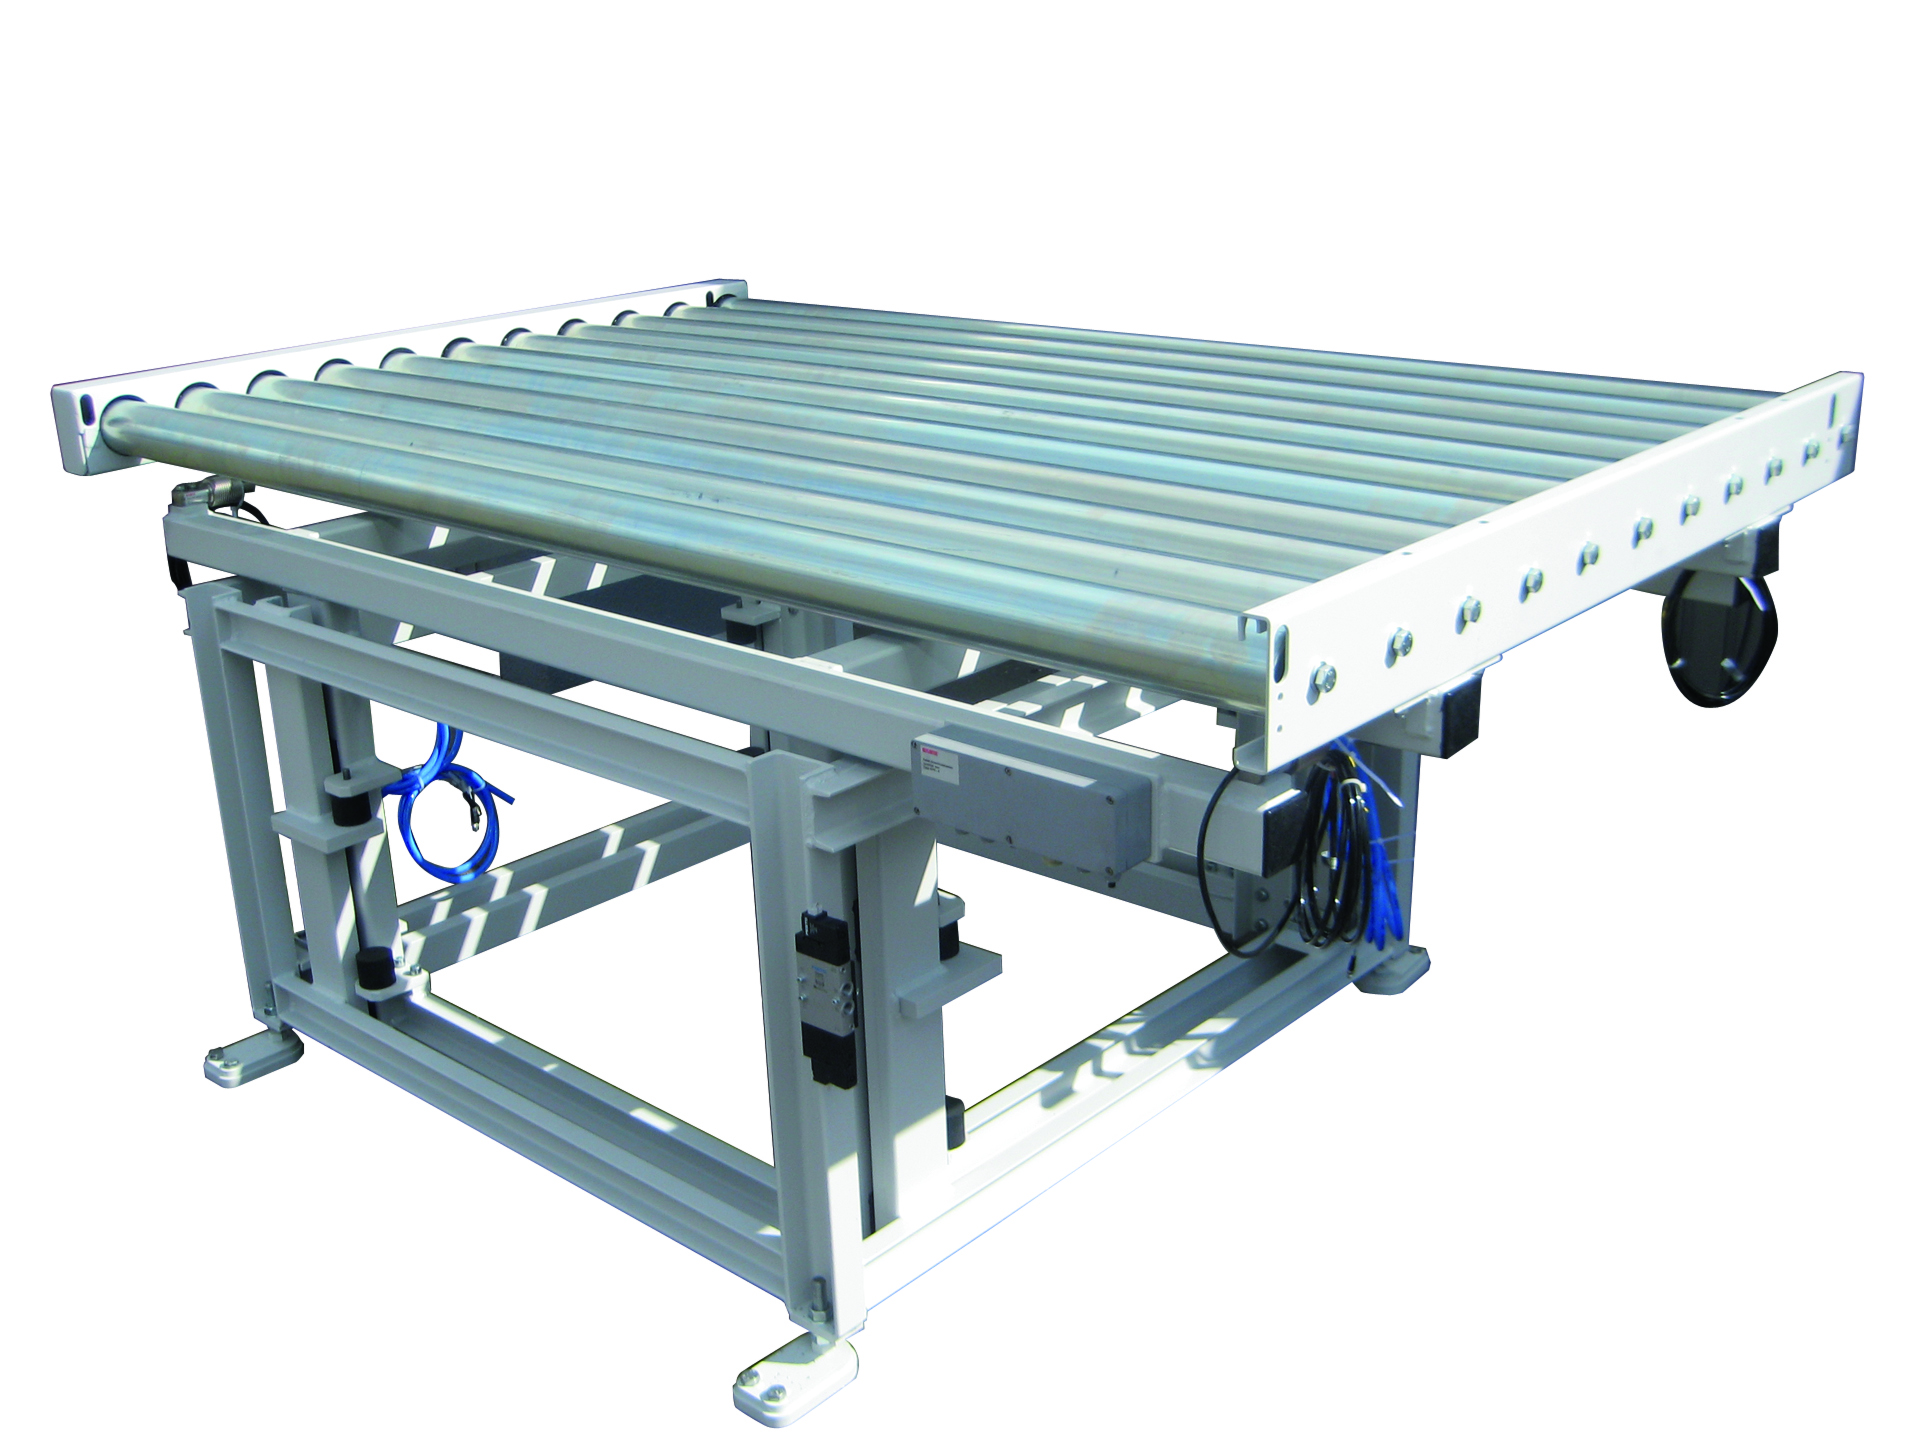 Lifting system with roller conveyor